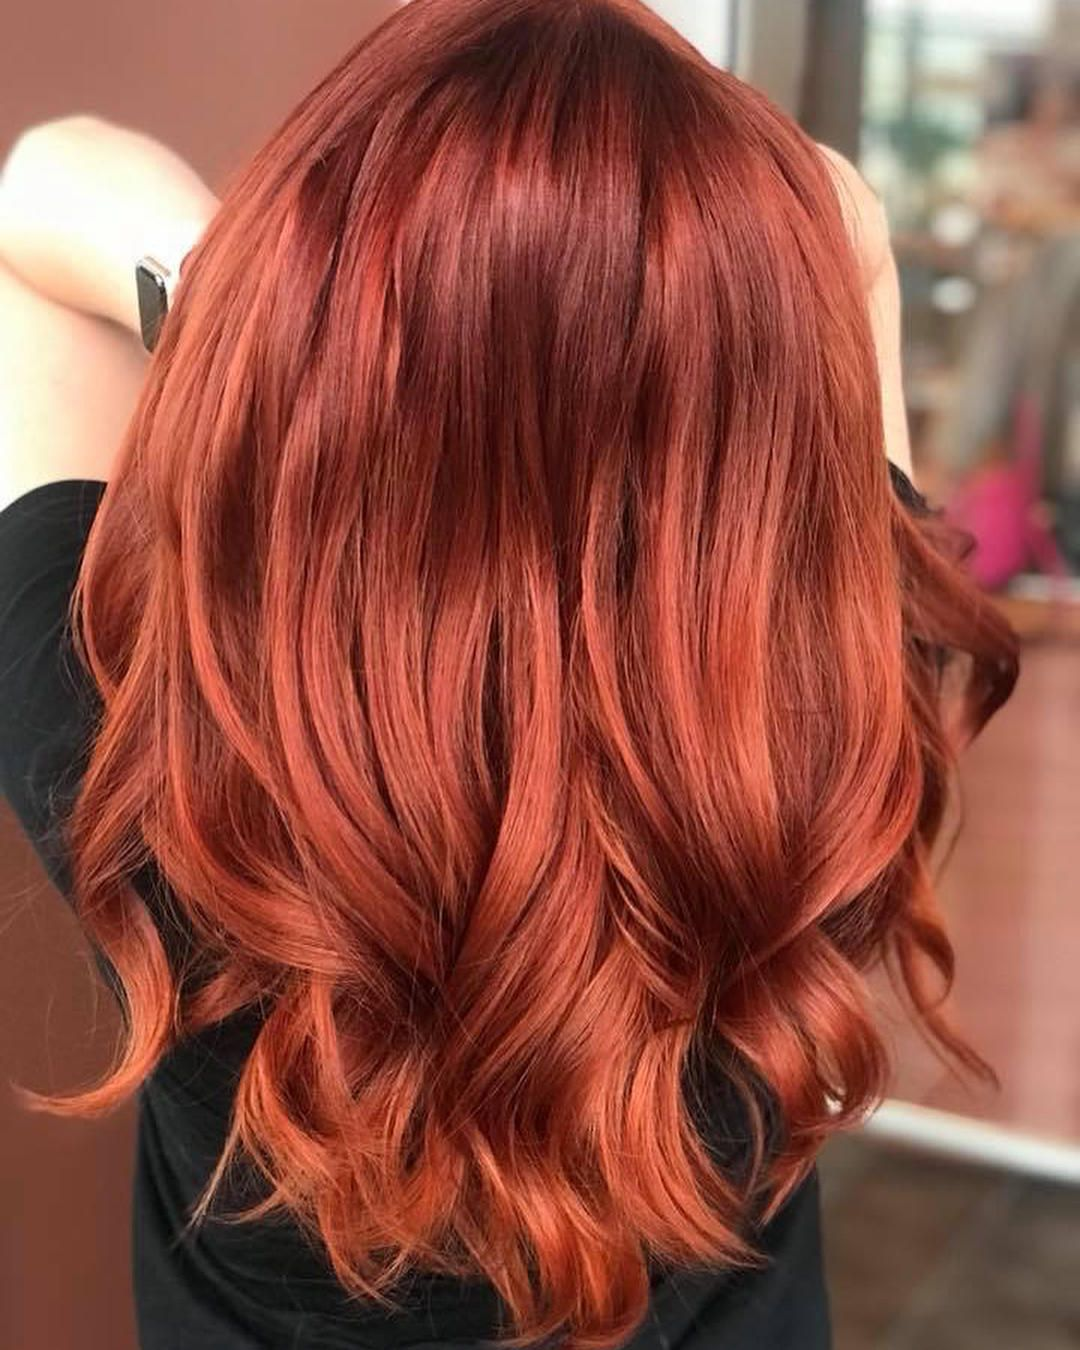 35 Lovely New Red Hair Color Ideas Red Hairstyles For